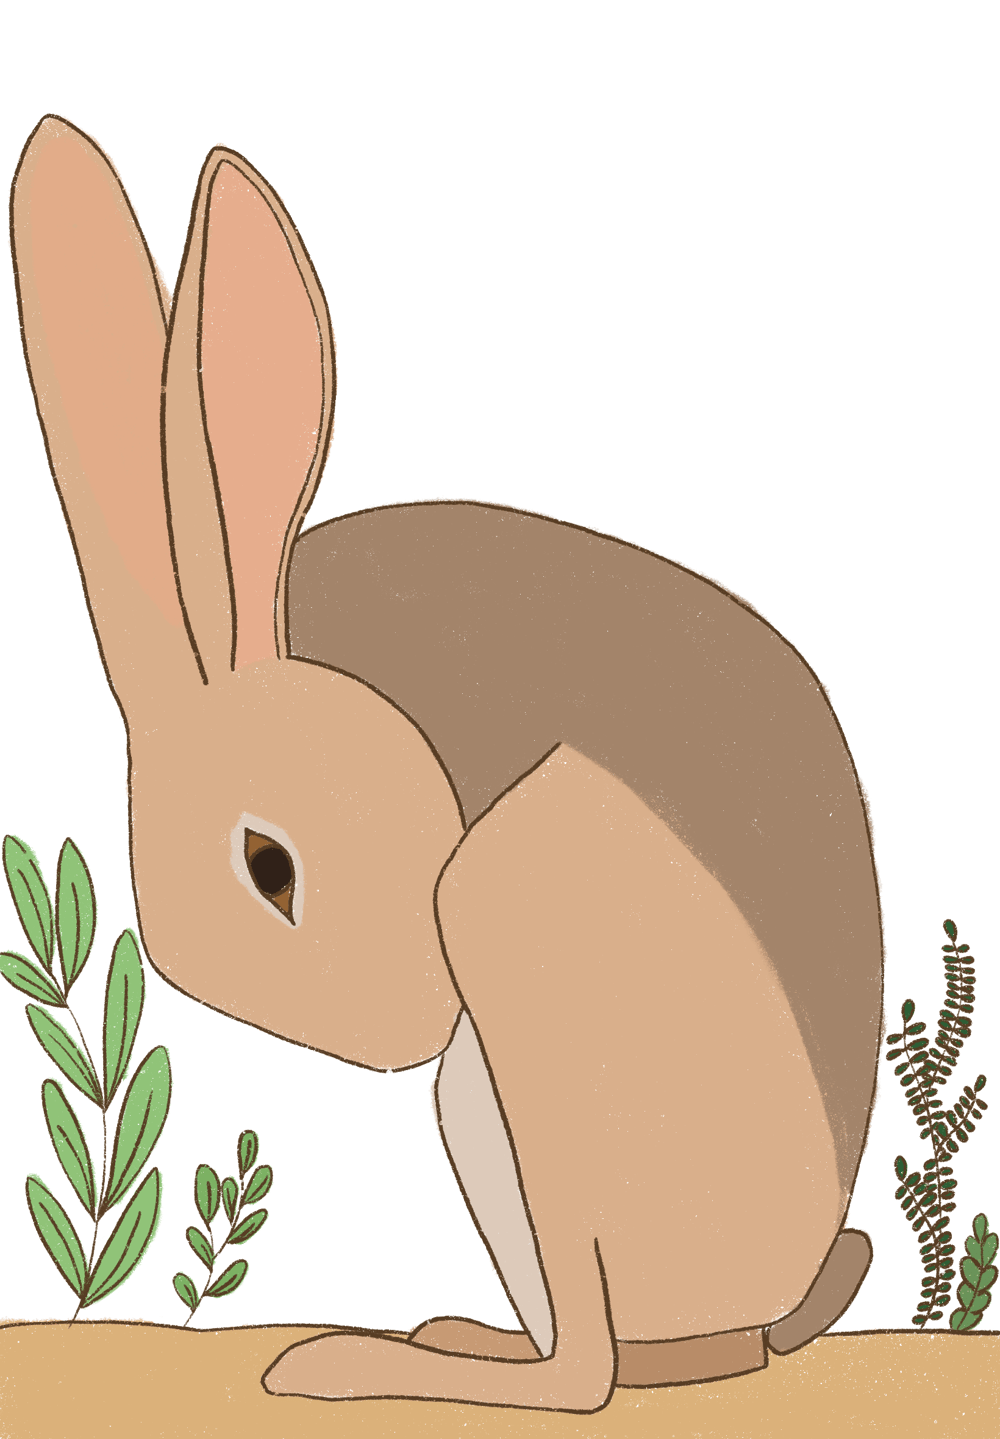 Hare - image 3 - student project